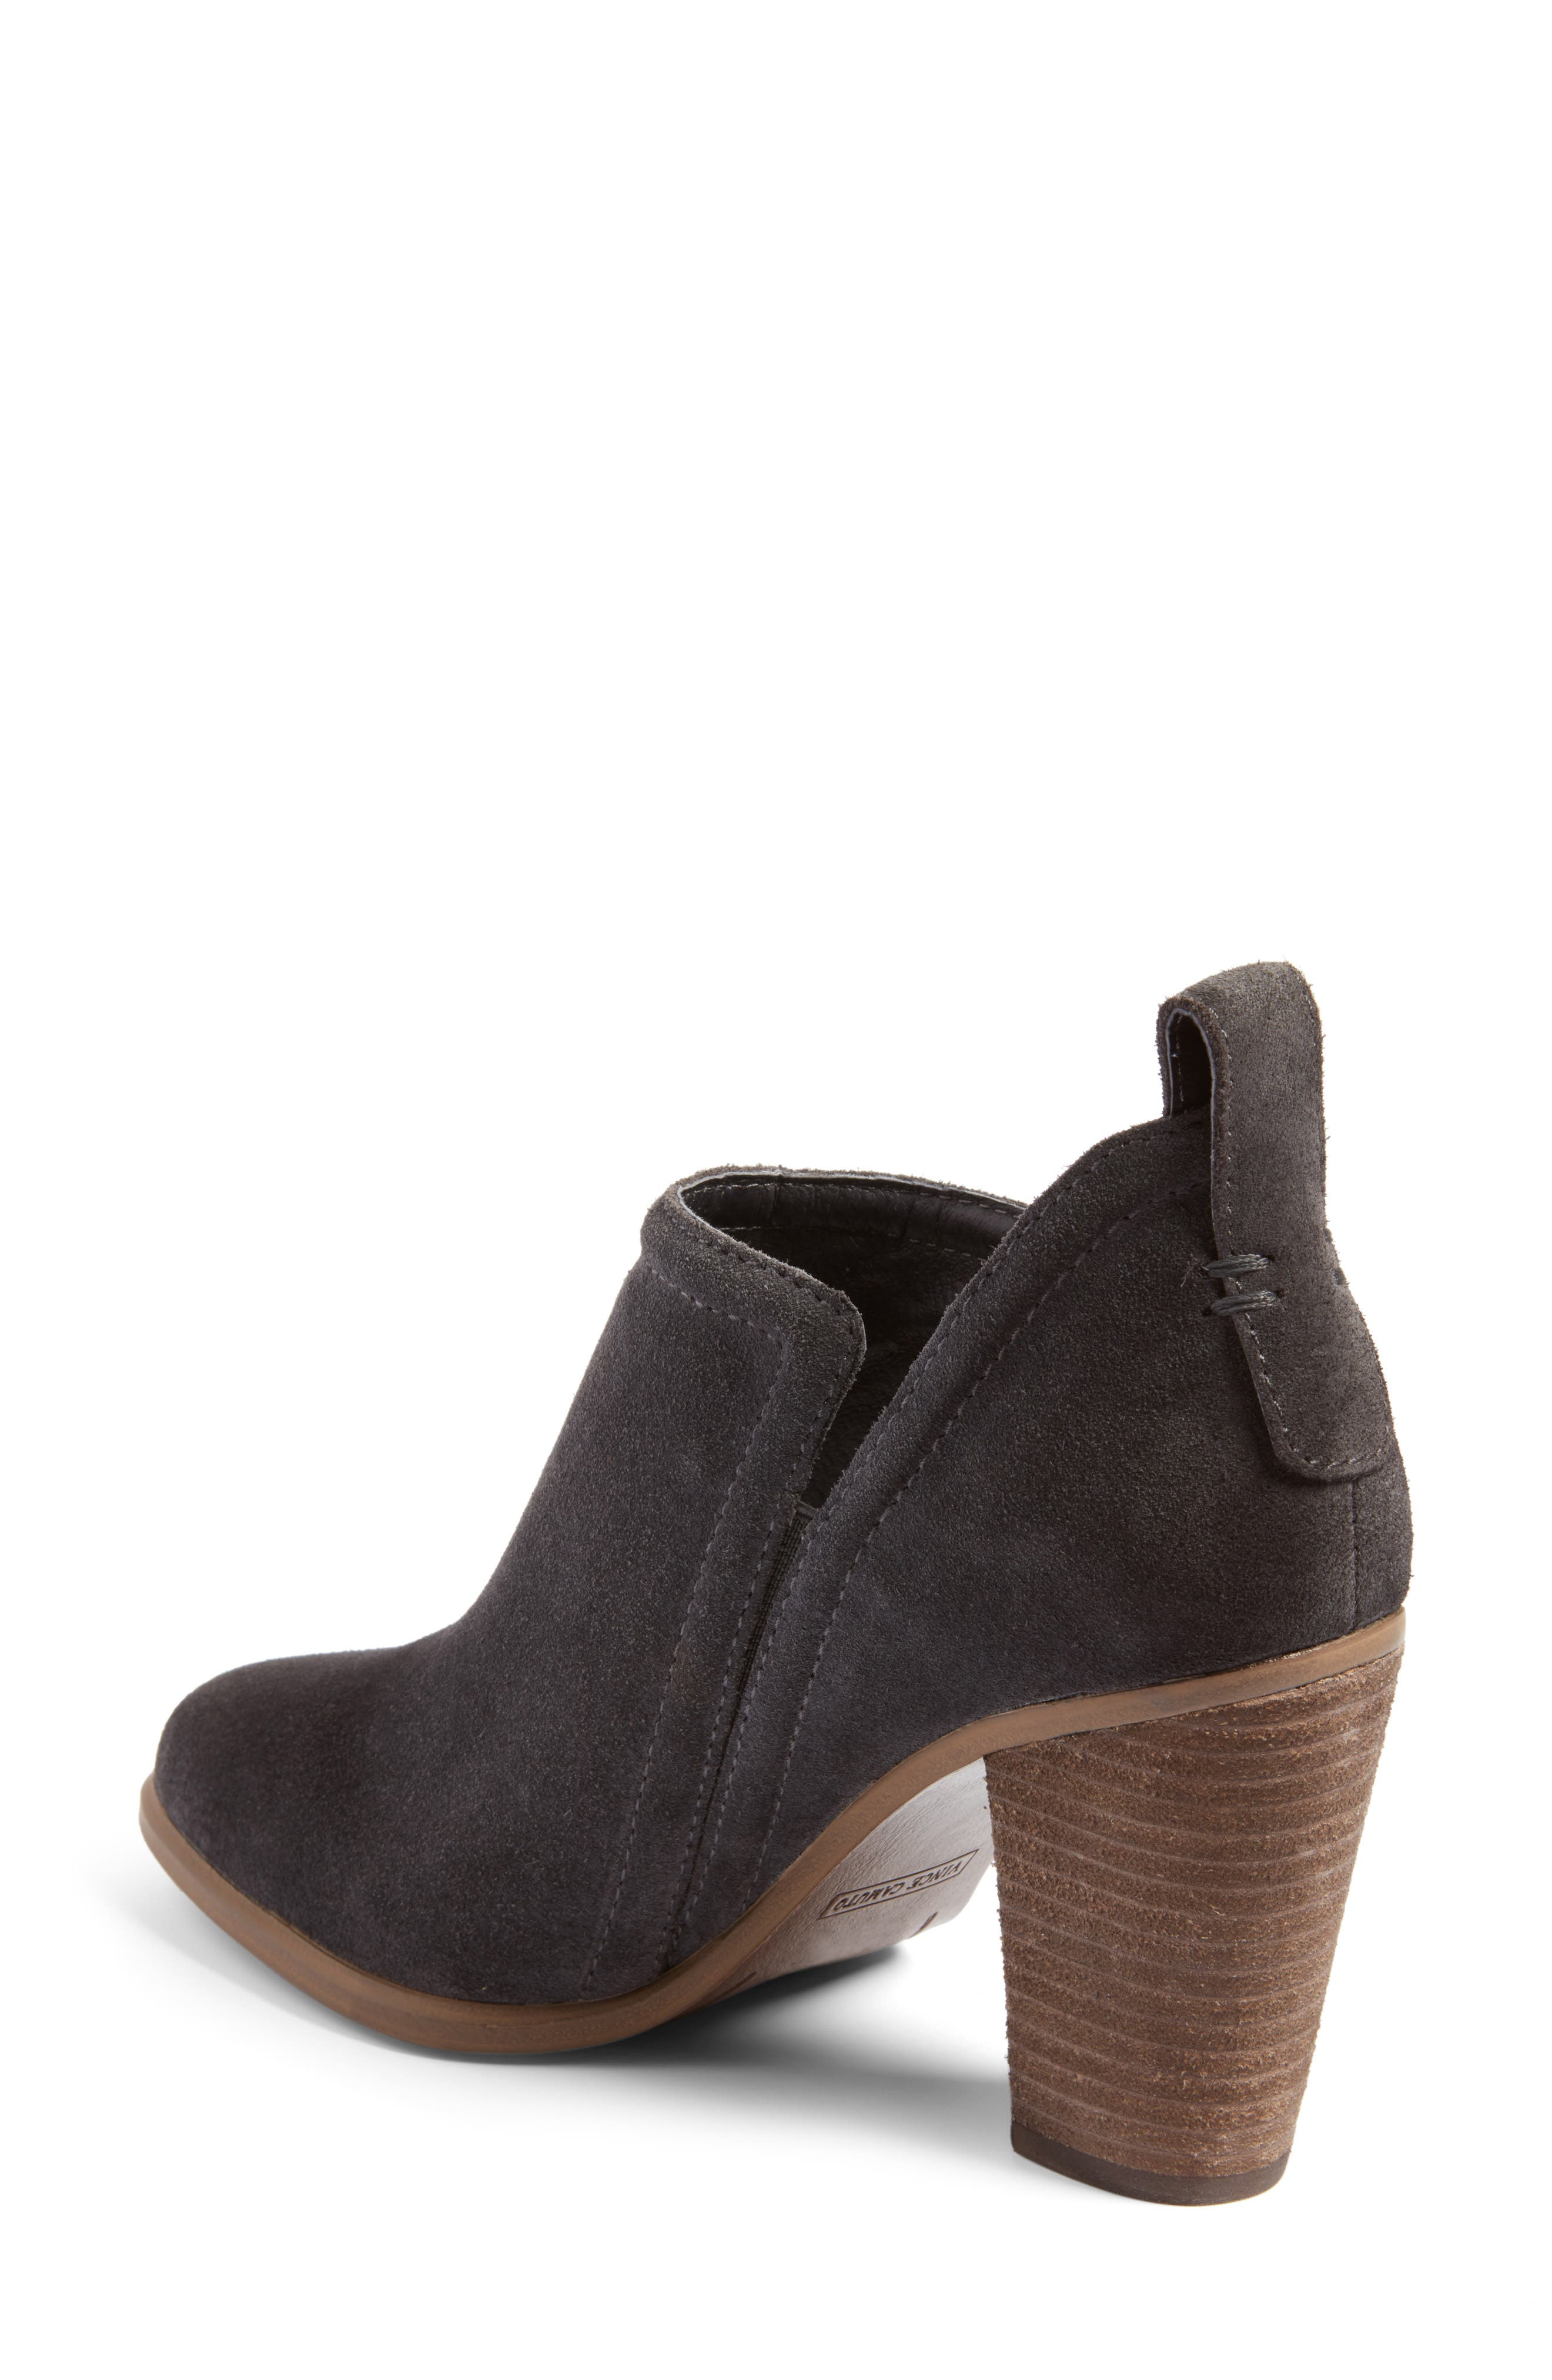 Francia Bootie,                             Alternate thumbnail 2, color,                             Granite Peak